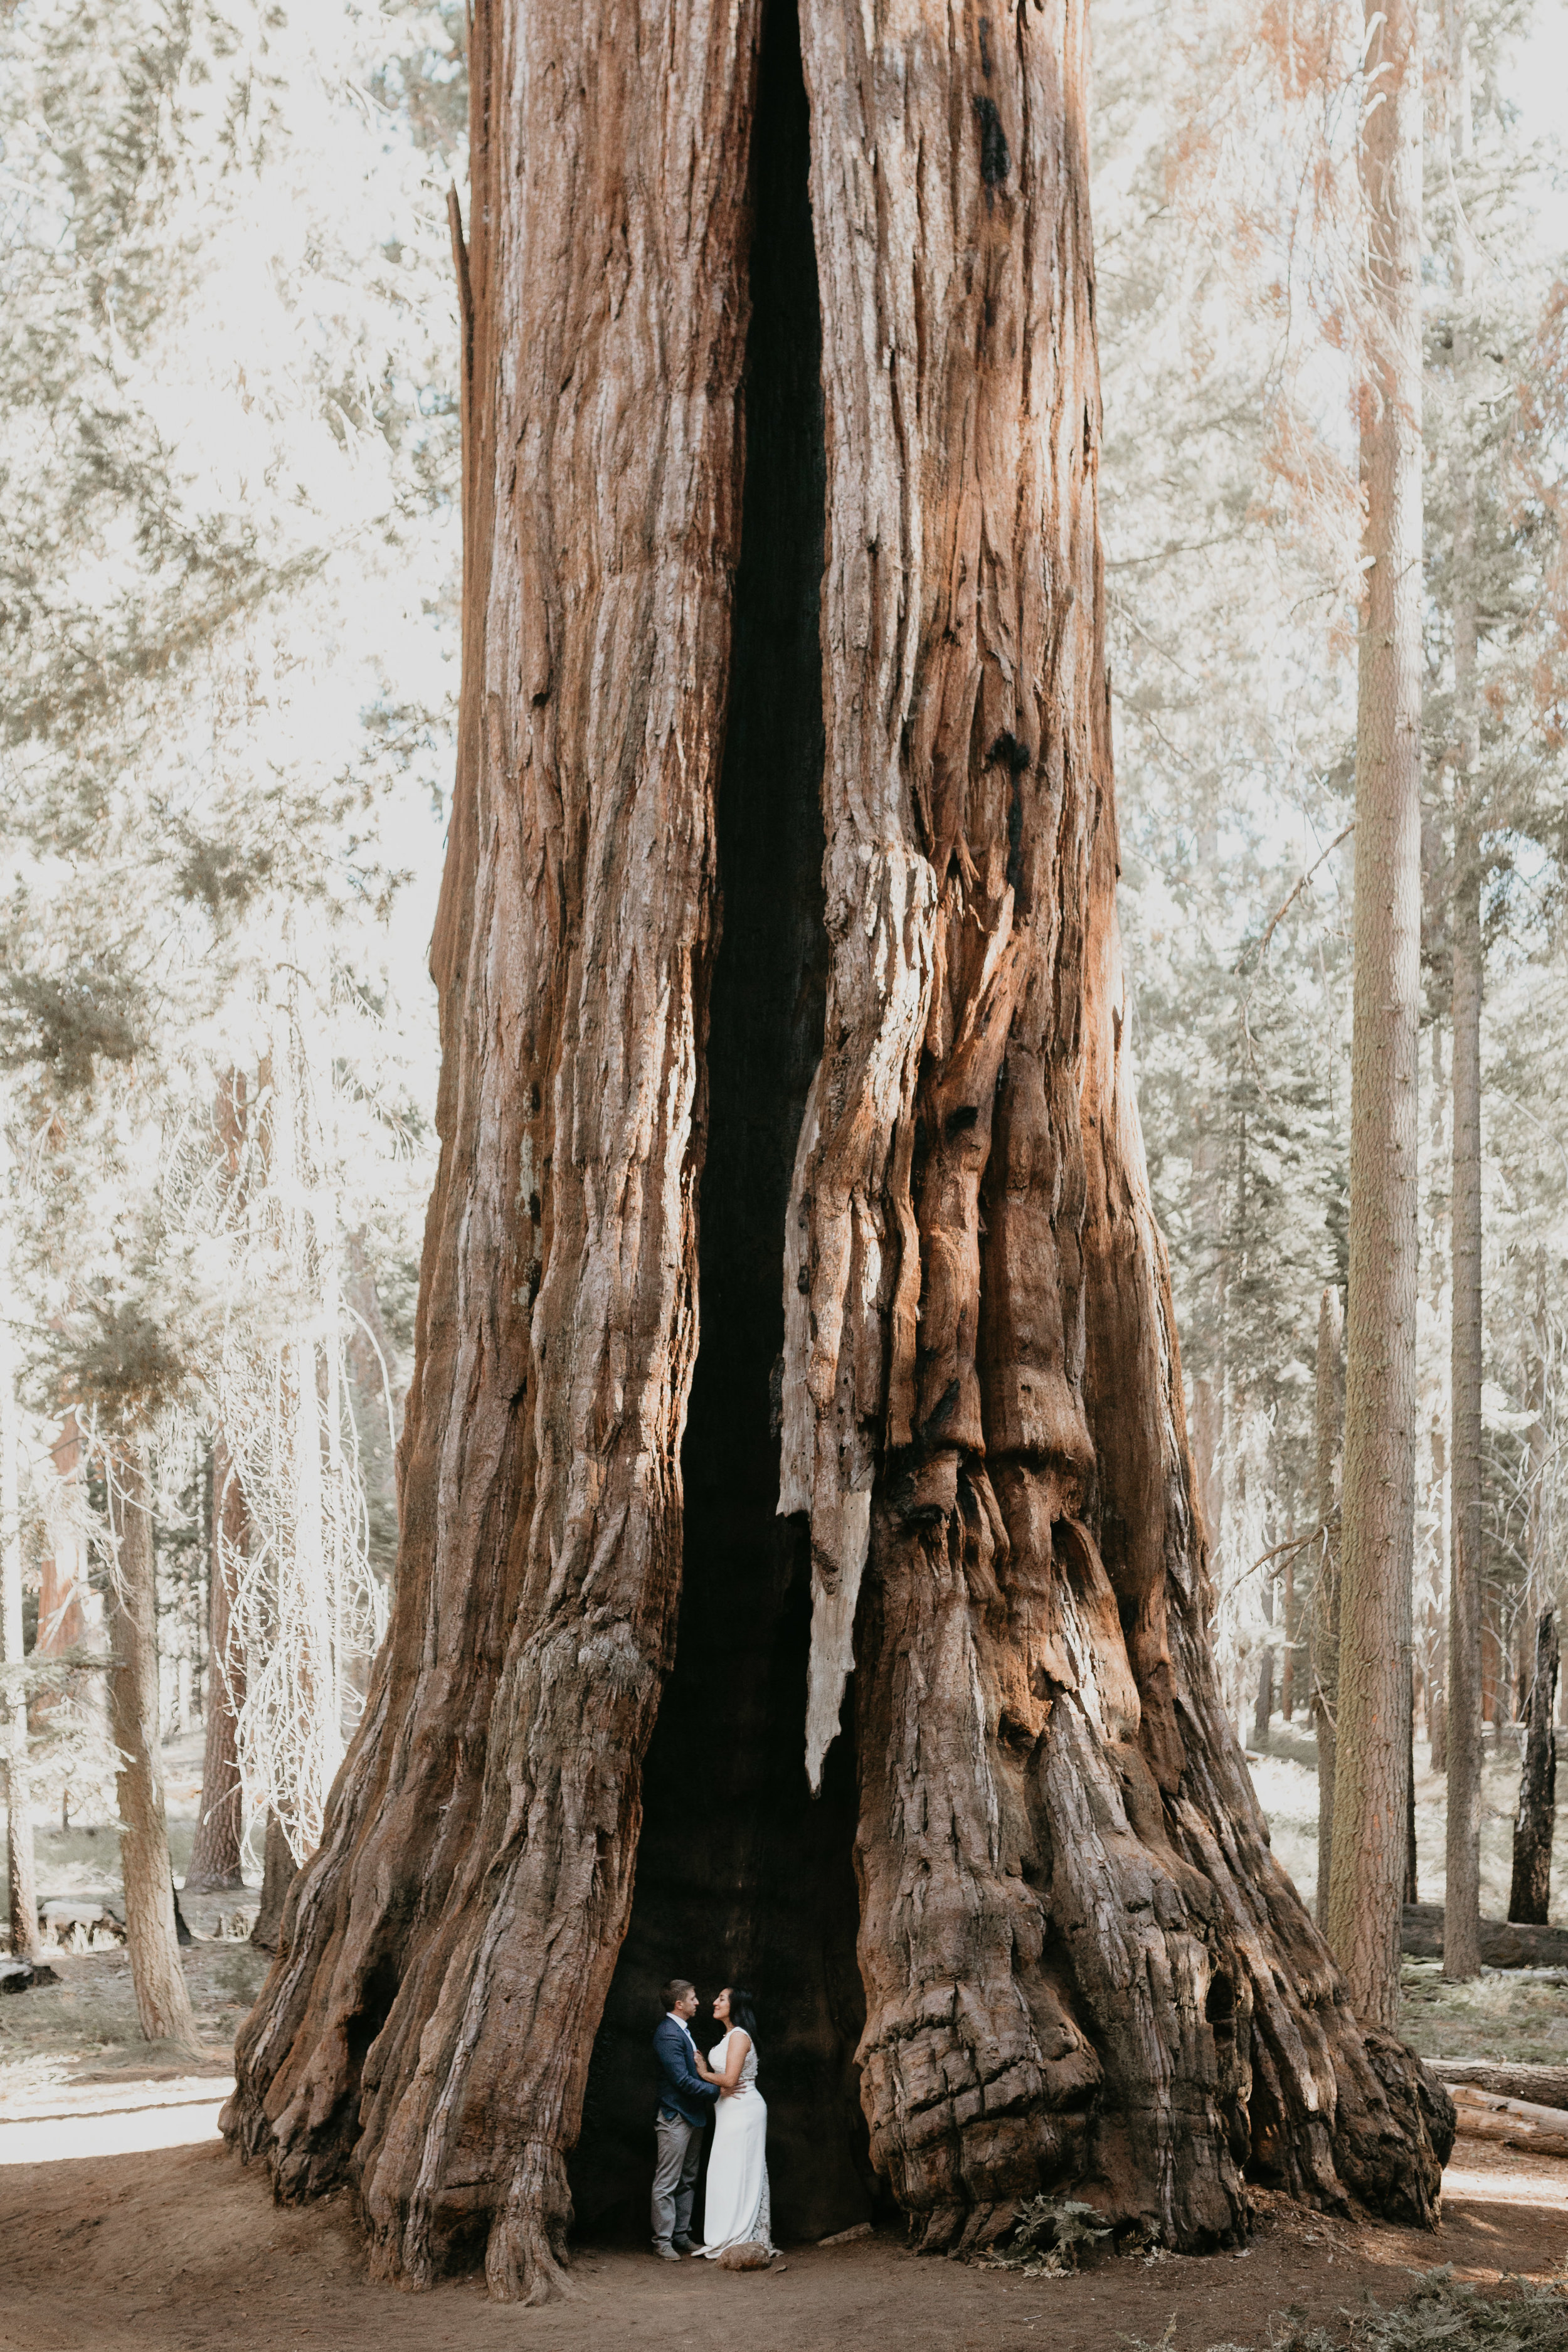 nicole-daacke-photography-sequoia-national-park-adventurous-elopement-sequoia-elopement-photographer-redwoods-california-intimate-wedding-photographer-21.jpg